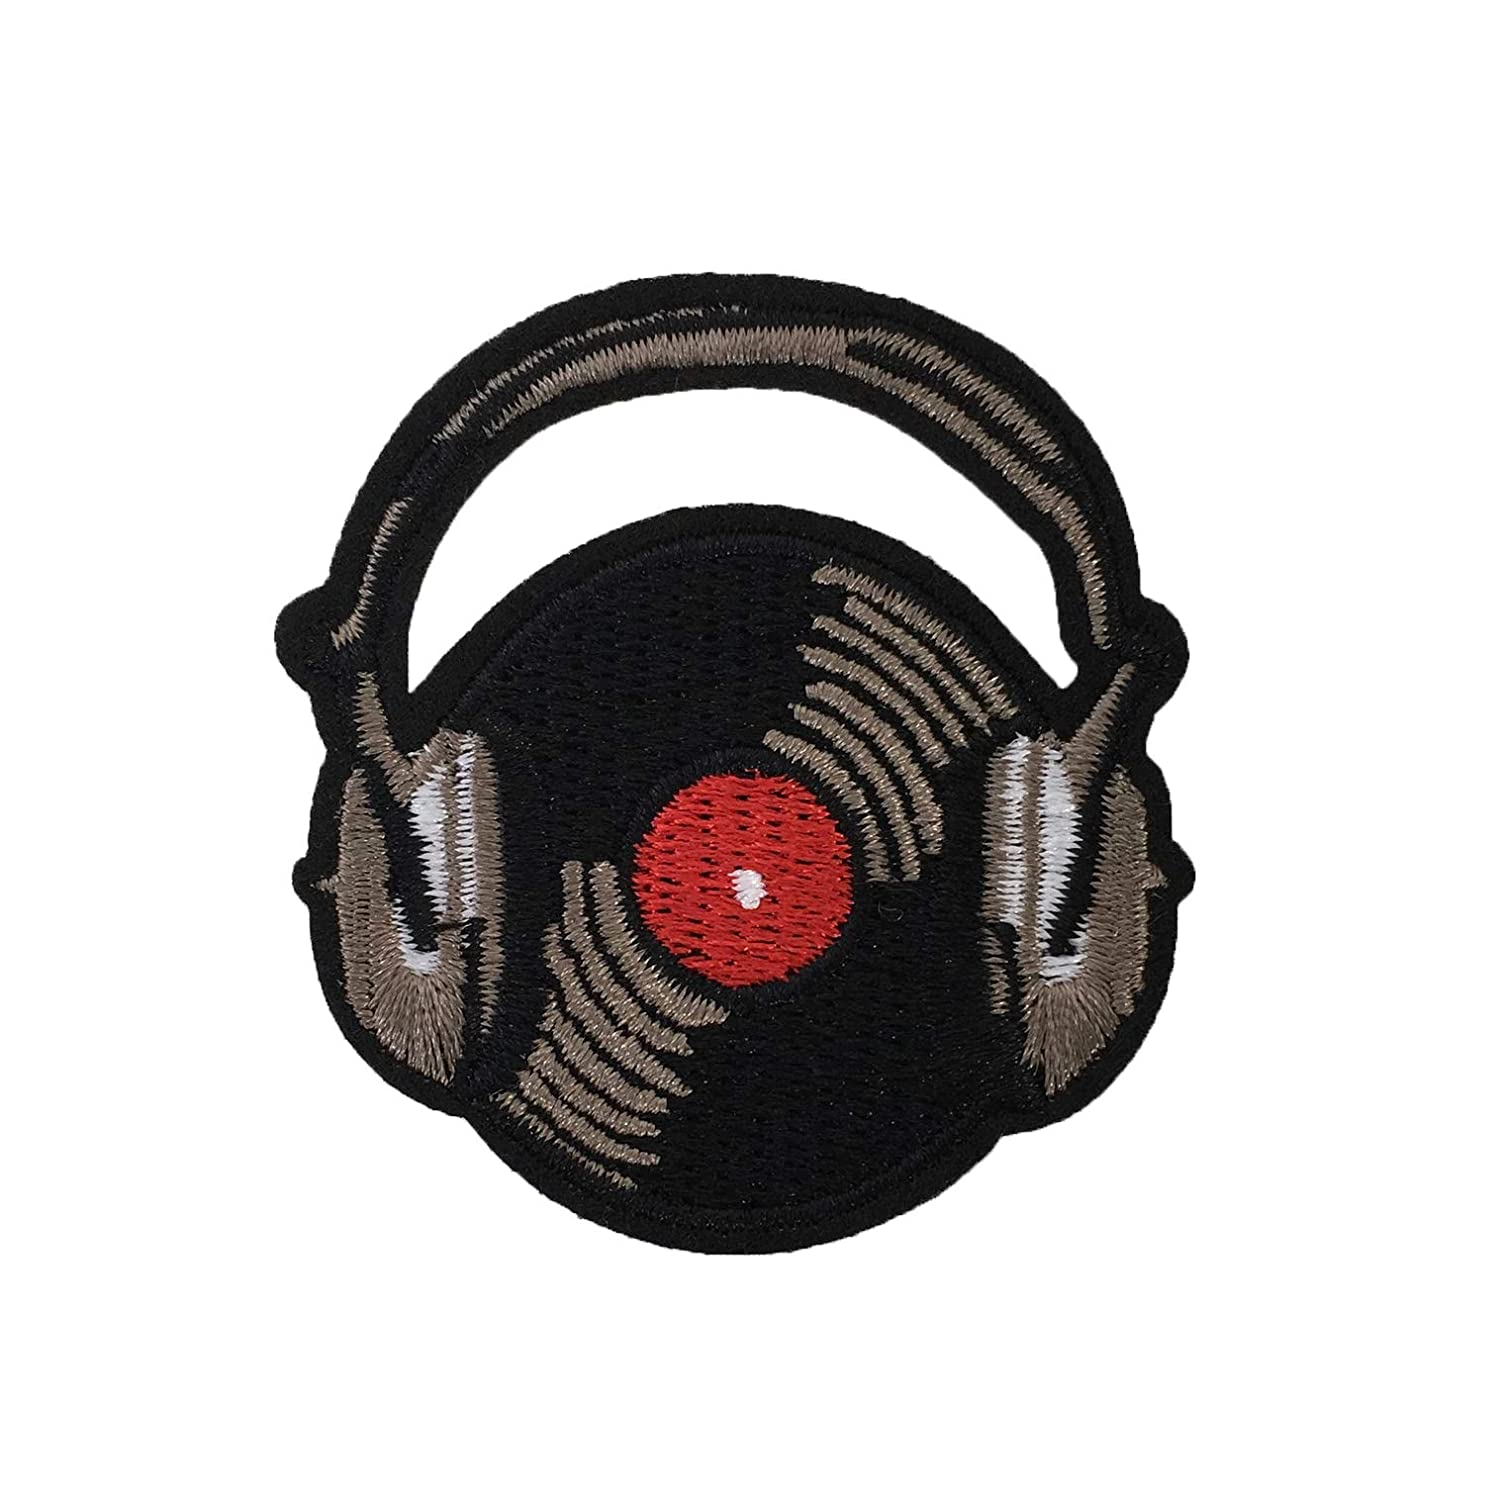 Retro Vinyl Record Headphones Embroidered Iron On Patch Applique FCP7843